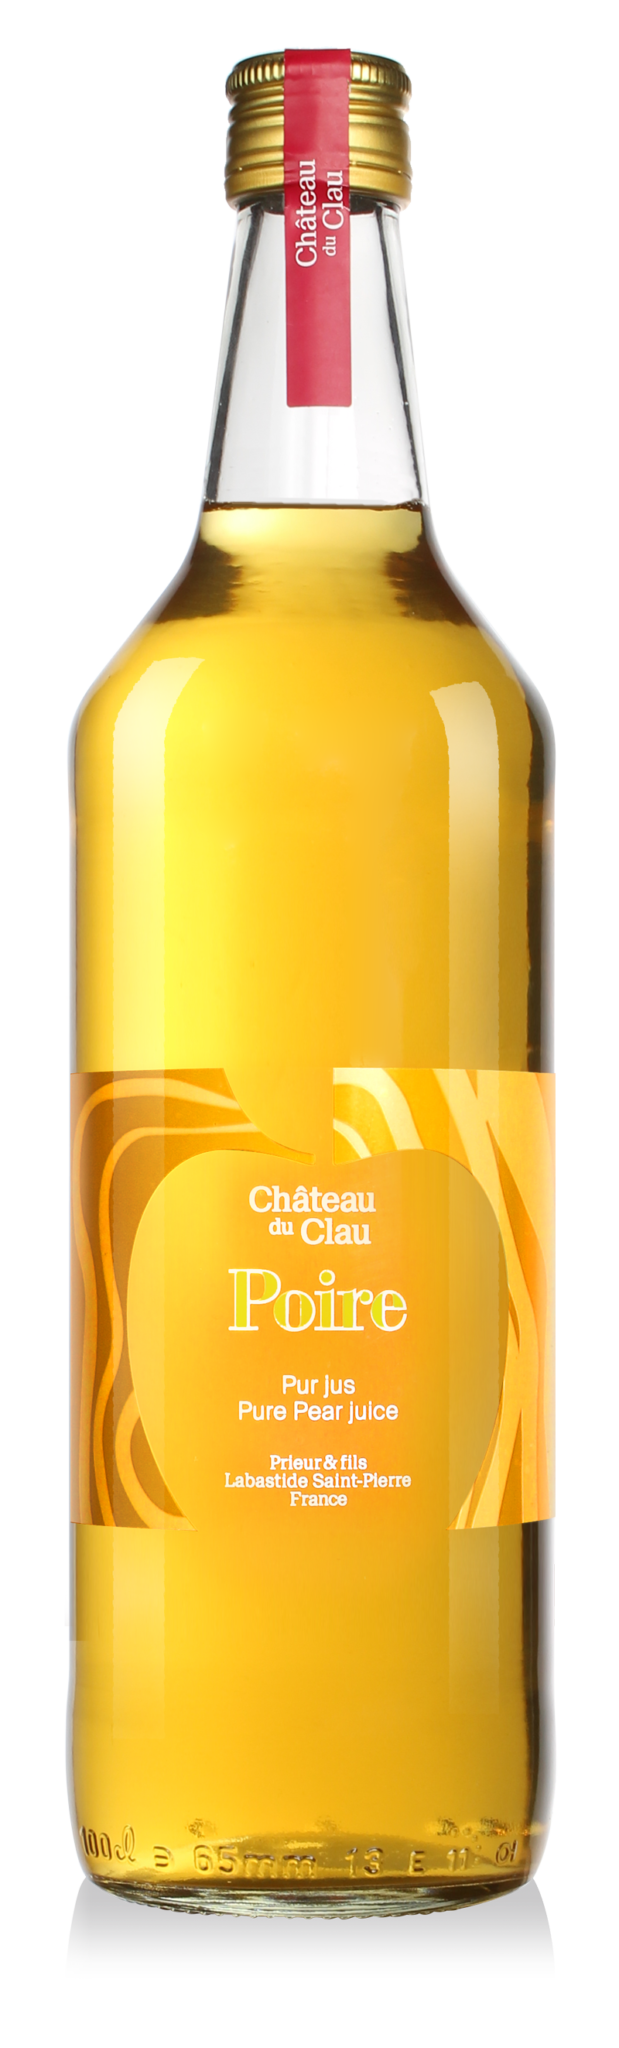 Pur Jus Poire Williams jus de fruits artisanal haut de gamme naturel Chateau du Clau